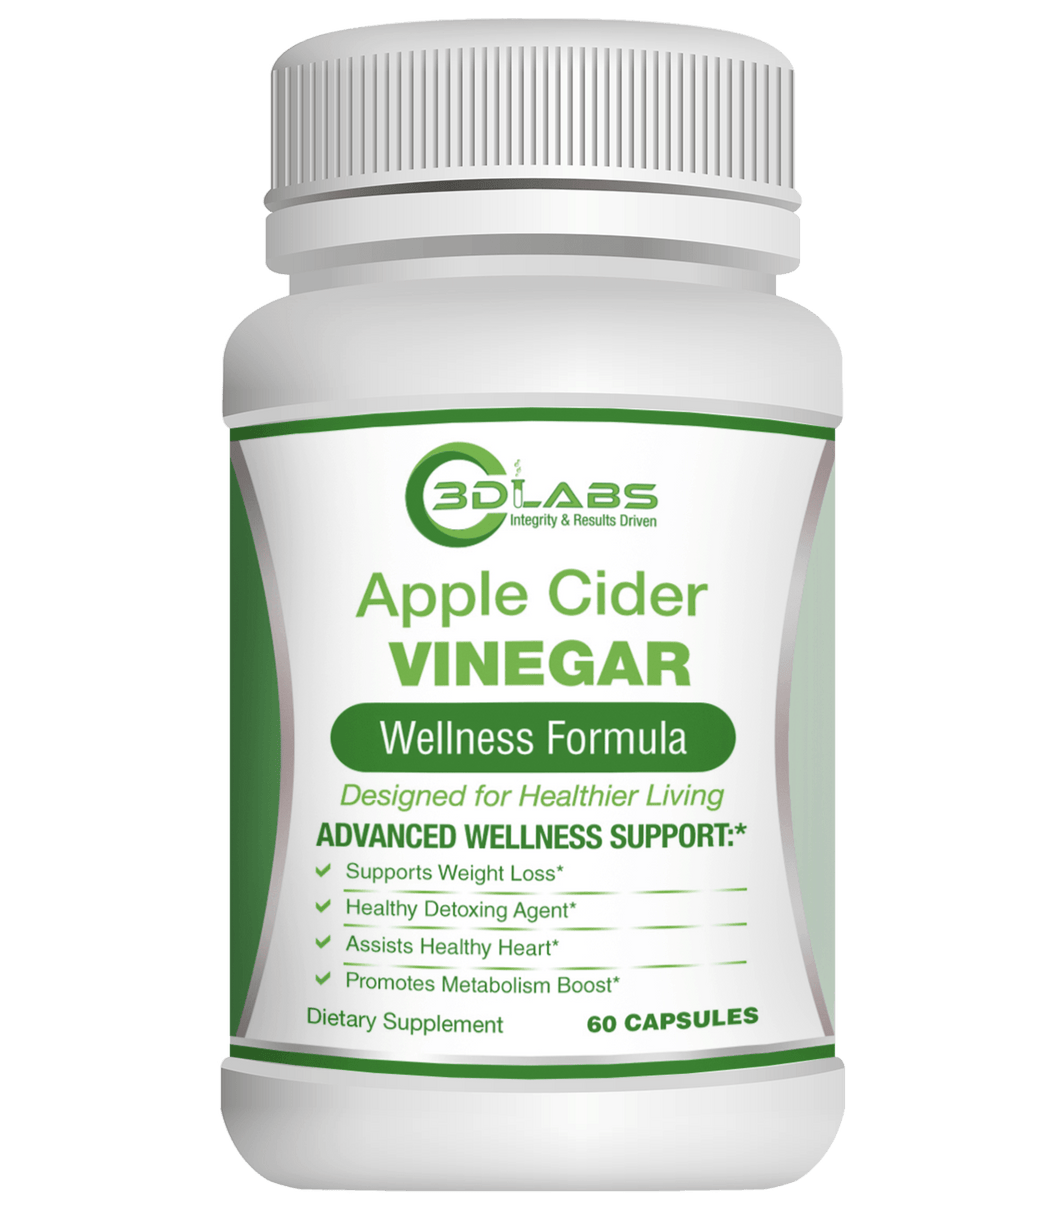 3D Labs Nutrition: Apple Cider Vinegar